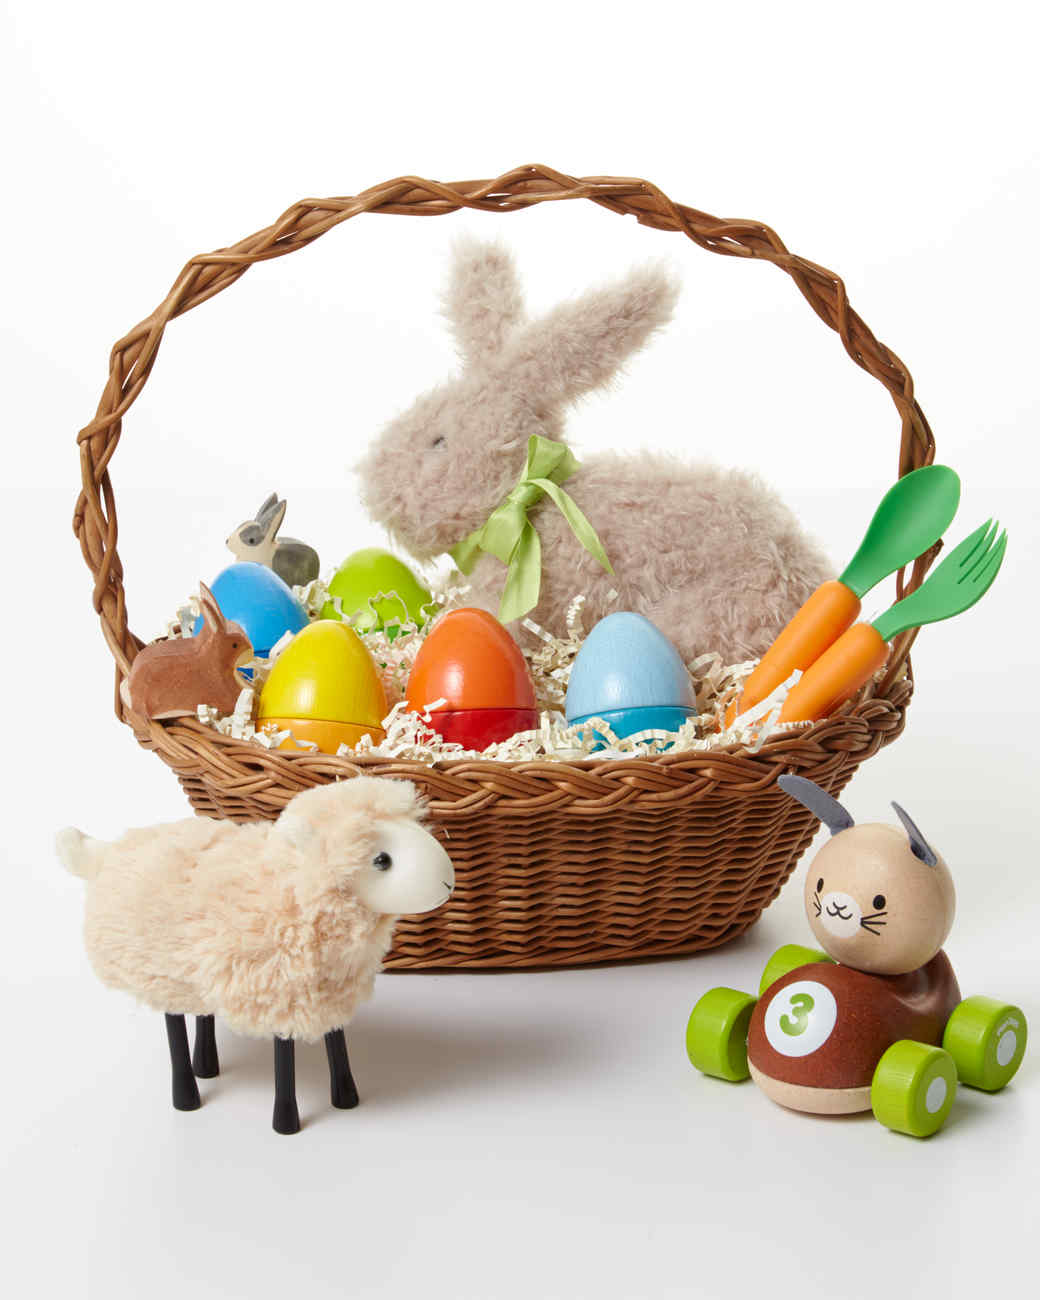 9 adorable easter basket ideas for toddlers martha stewart 9 adorable easter basket ideas for toddlers negle Gallery